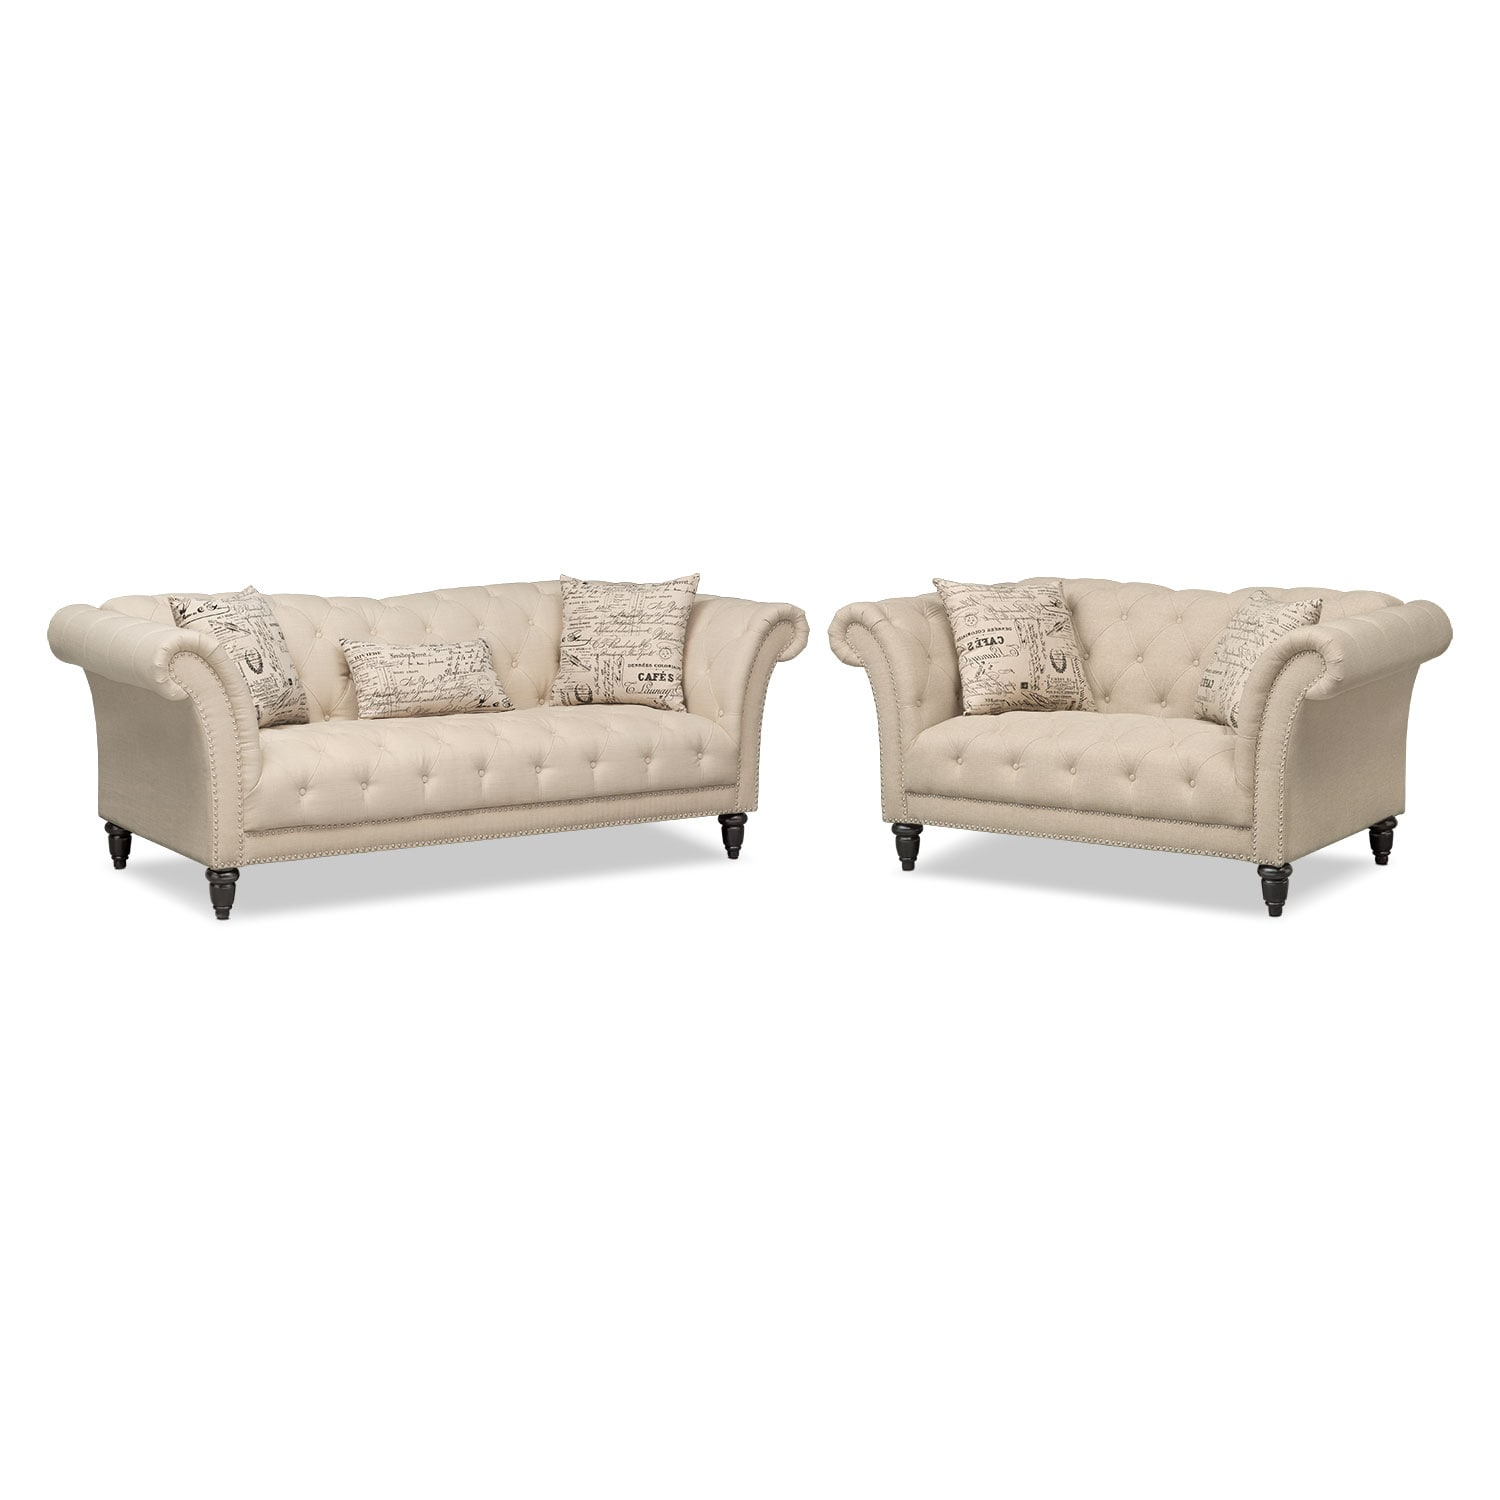 High Quality Marisol Sofa And Loveseat   Beige